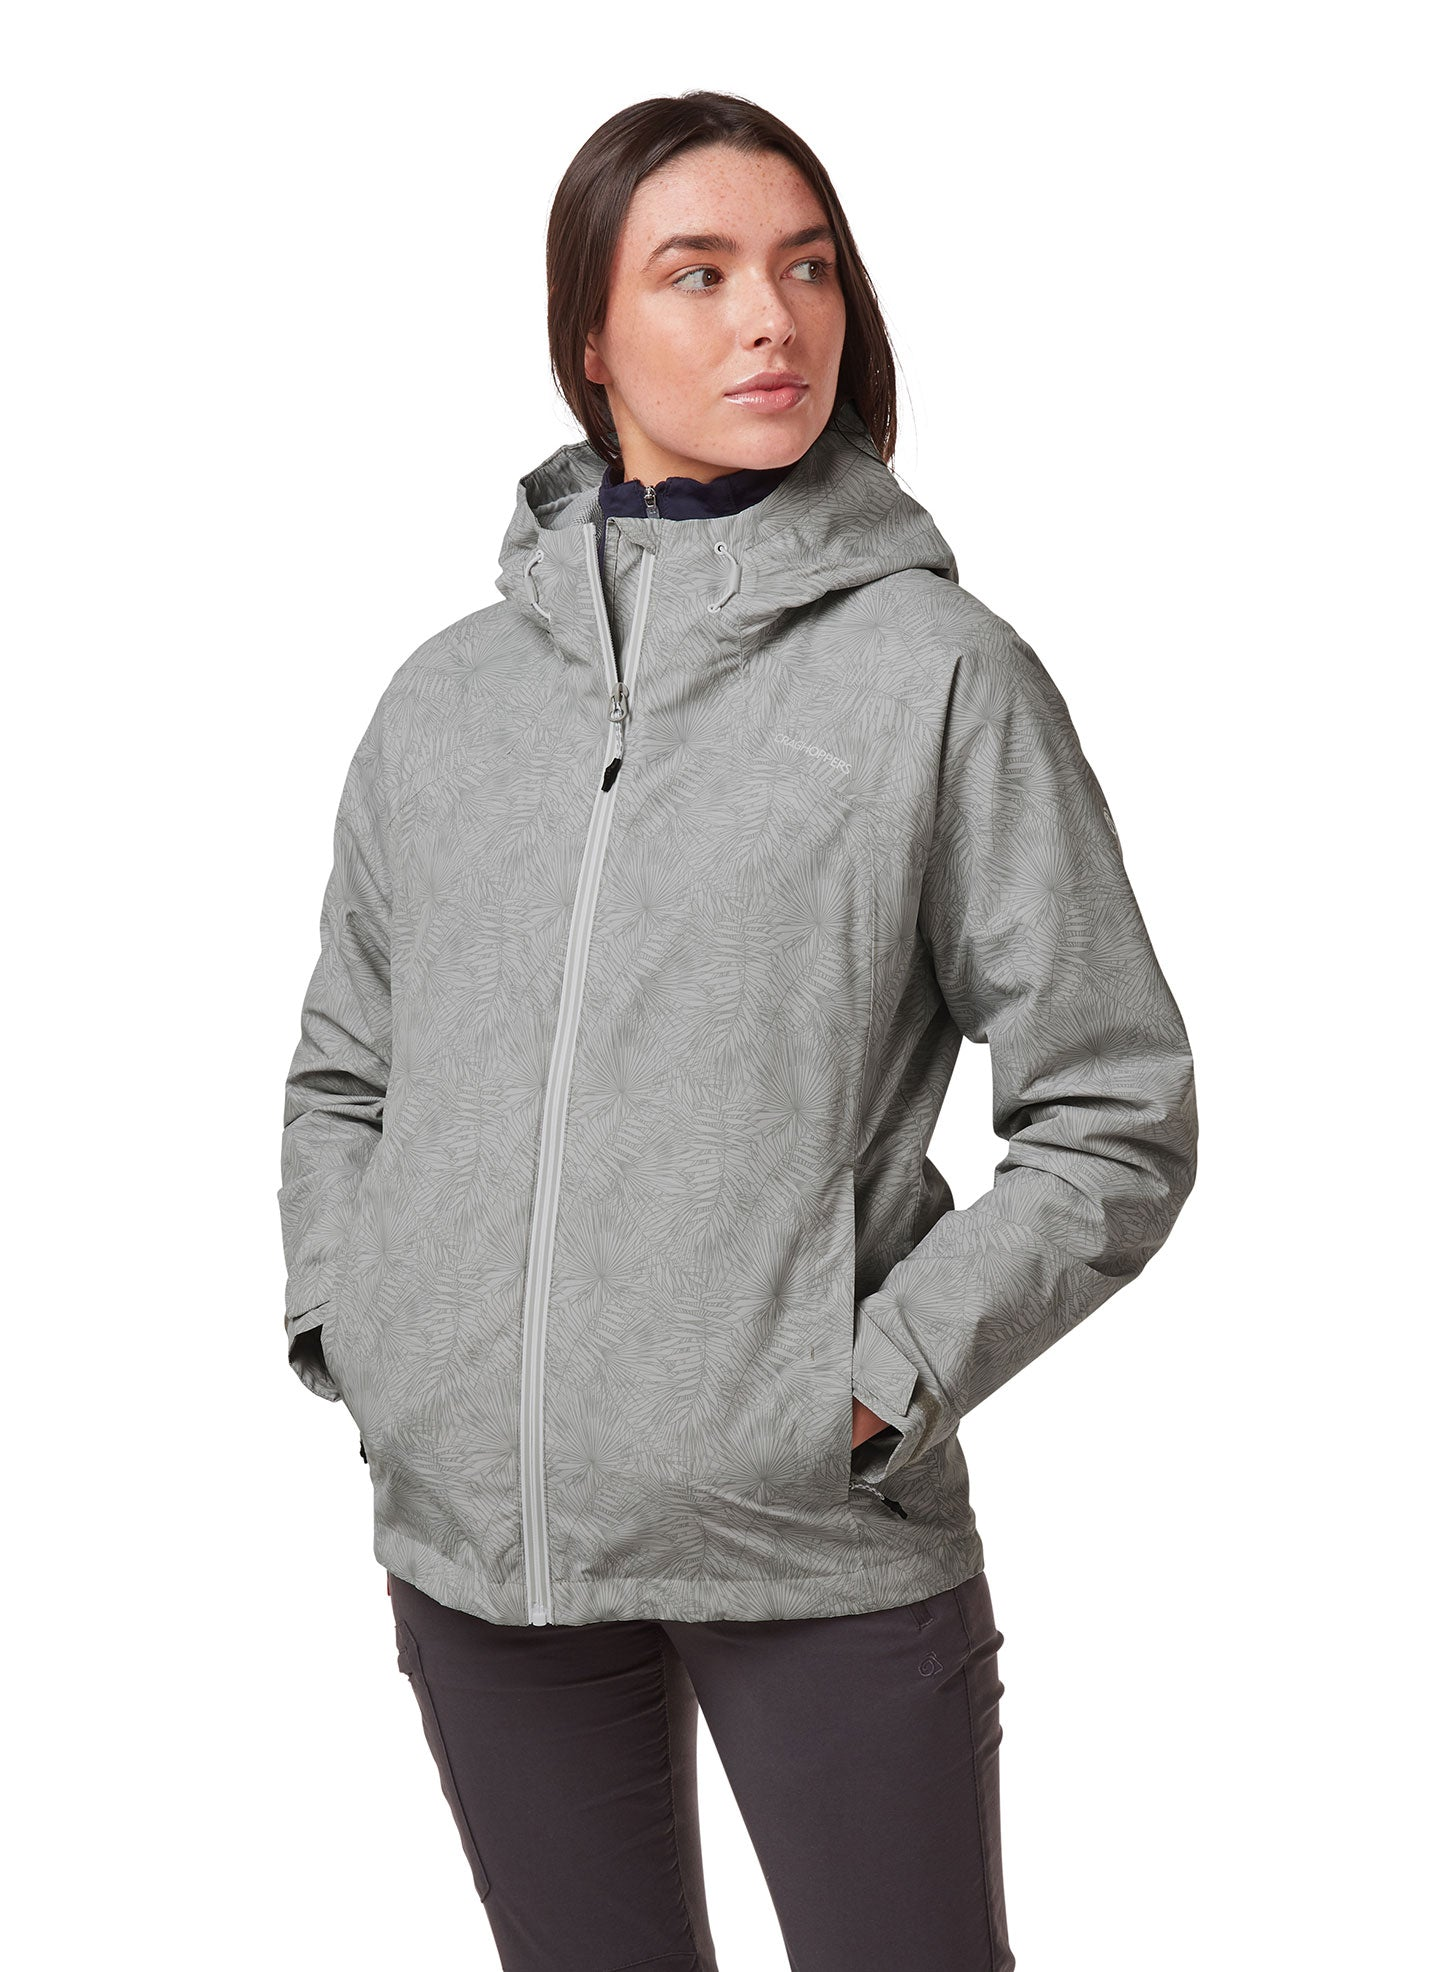 Dove Grey print Toscana Ladies Jacket by Craghoppers